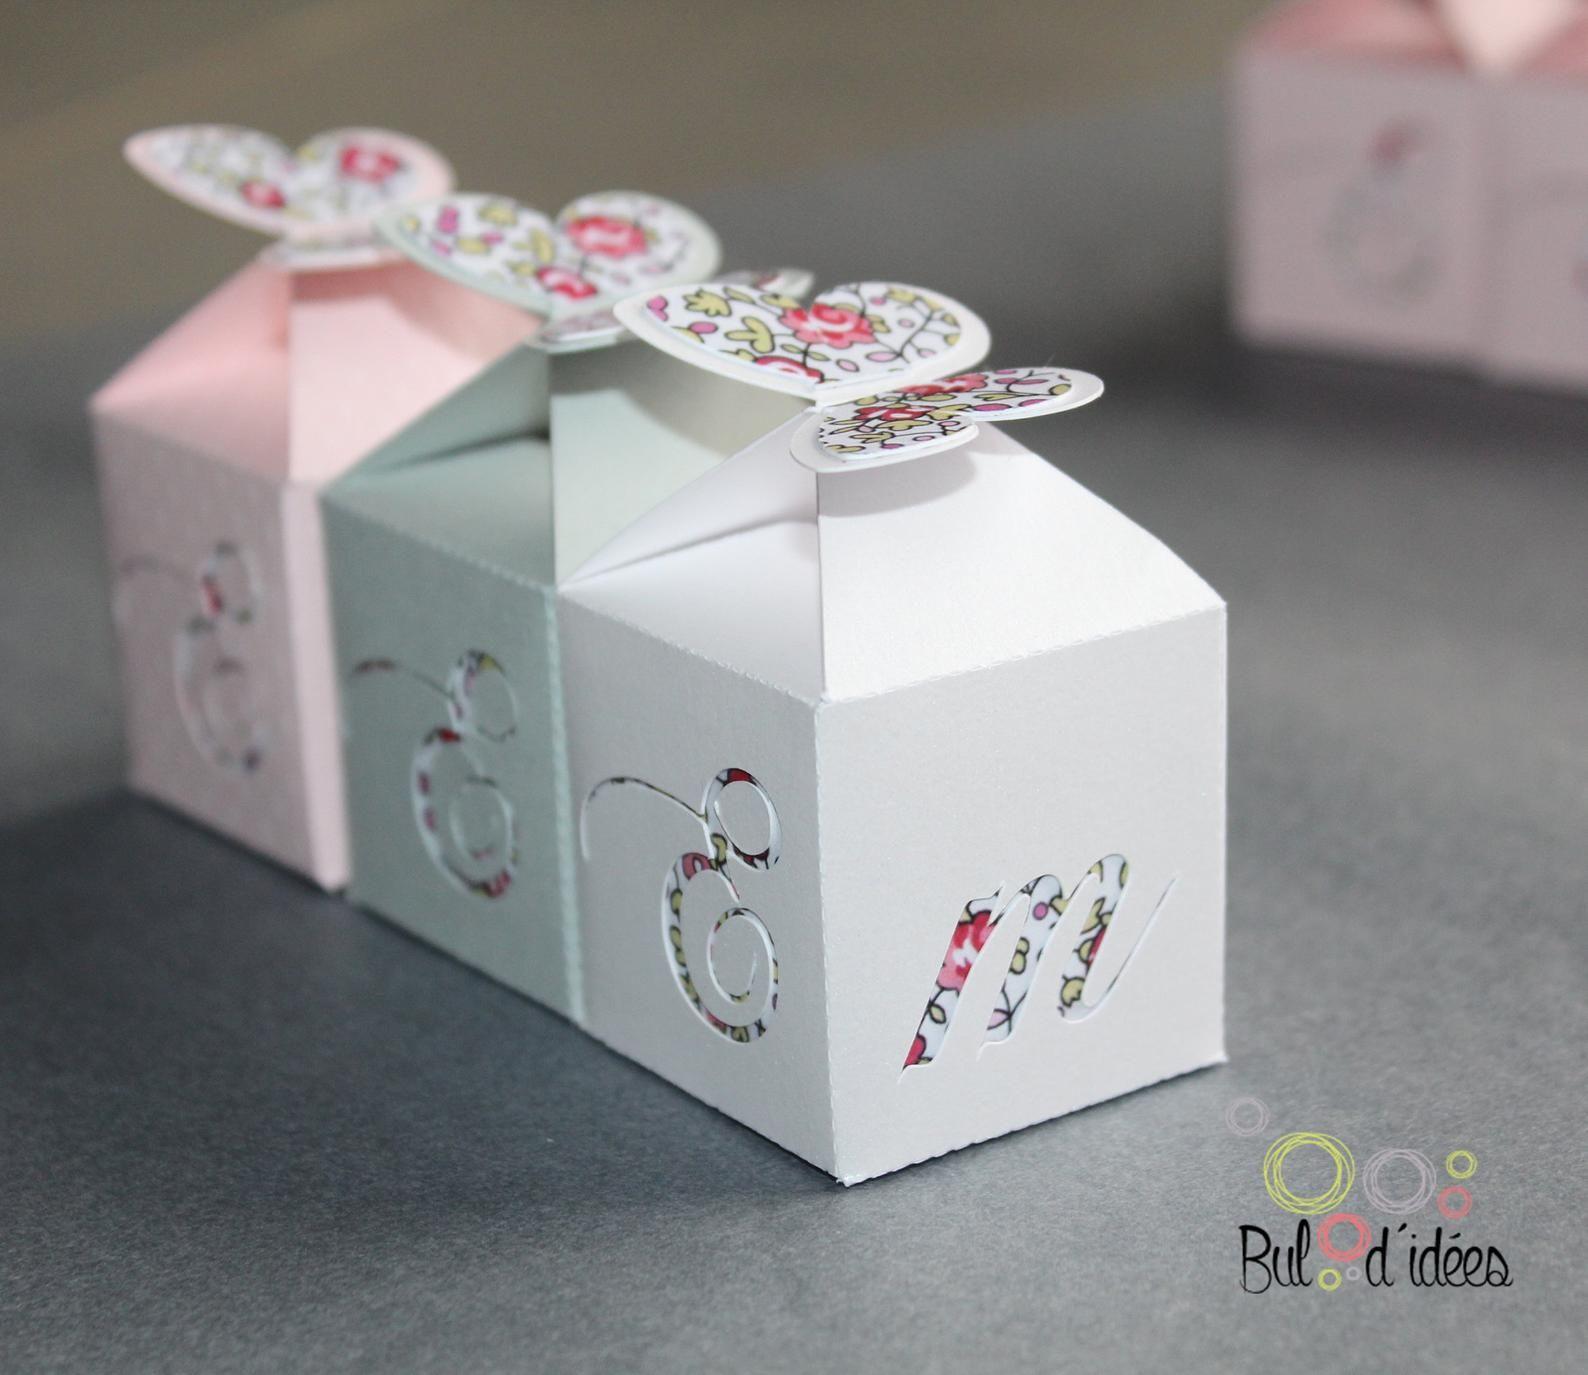 Butterfly Liberty Candy Box Baptism Containers Gifts For Guests In 2020 Gifts Homemade Cards Candy Boxes